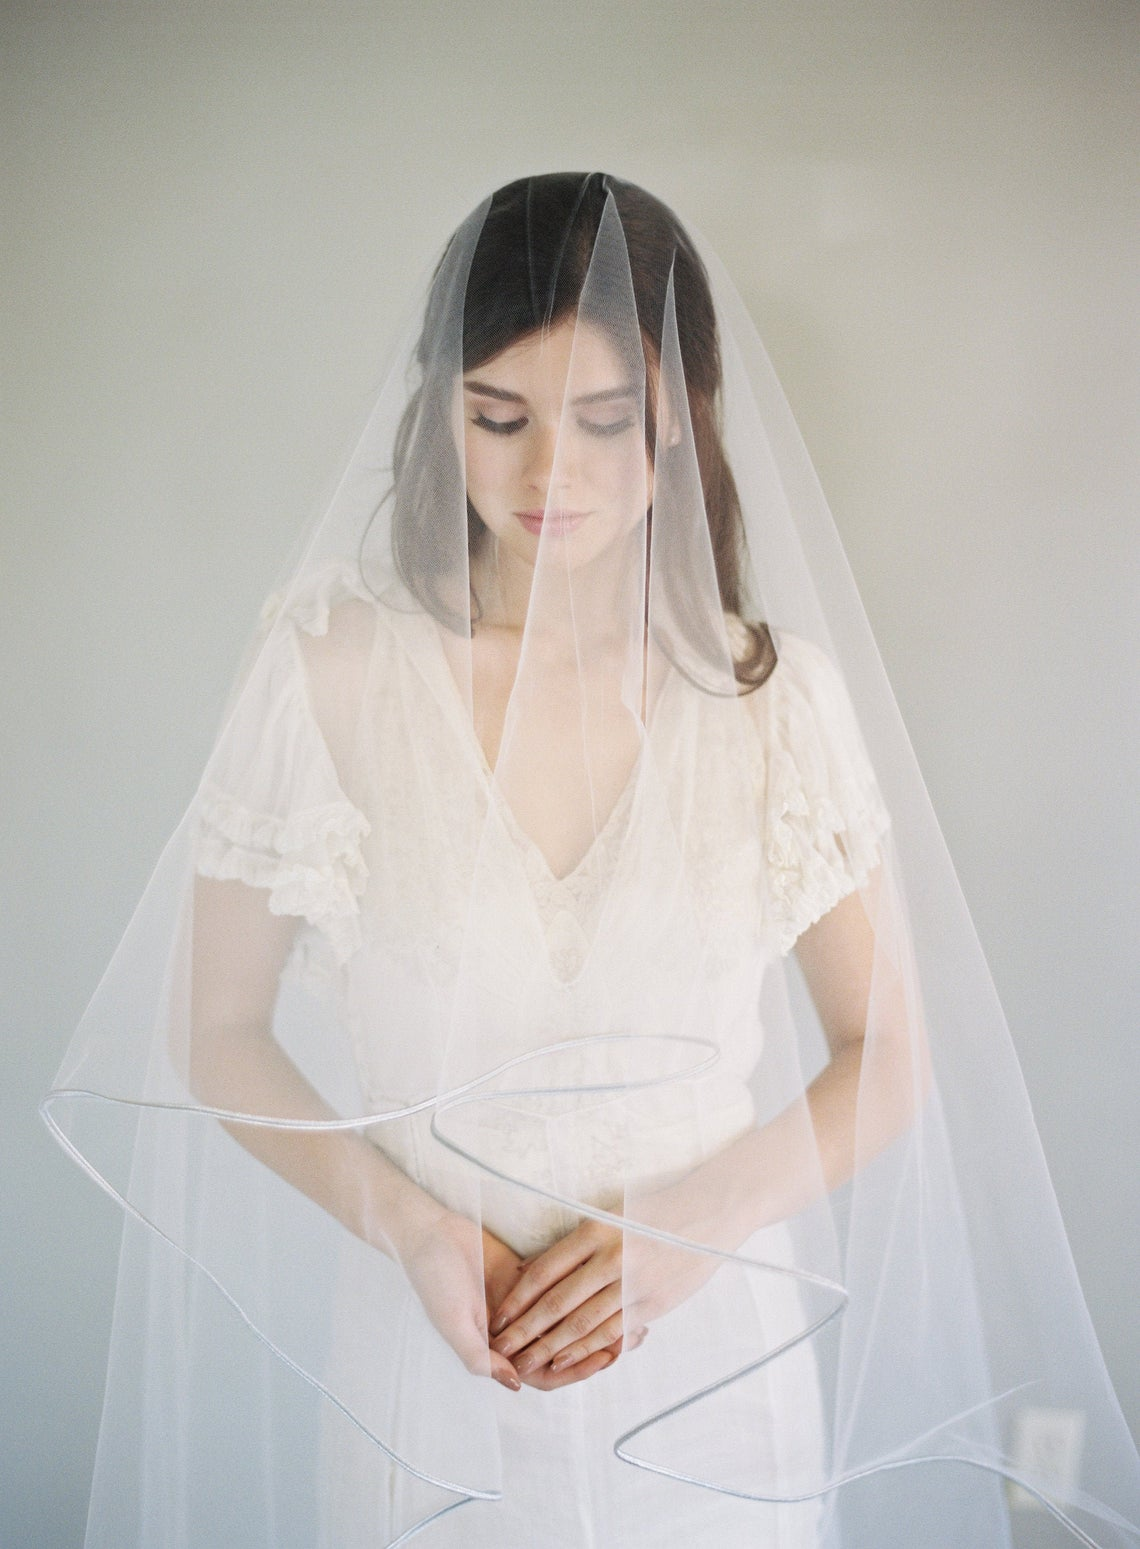 Chloe Veil_Two-Tier Waltz Length Bridal Veil with Chantilly French Lace Appliqués